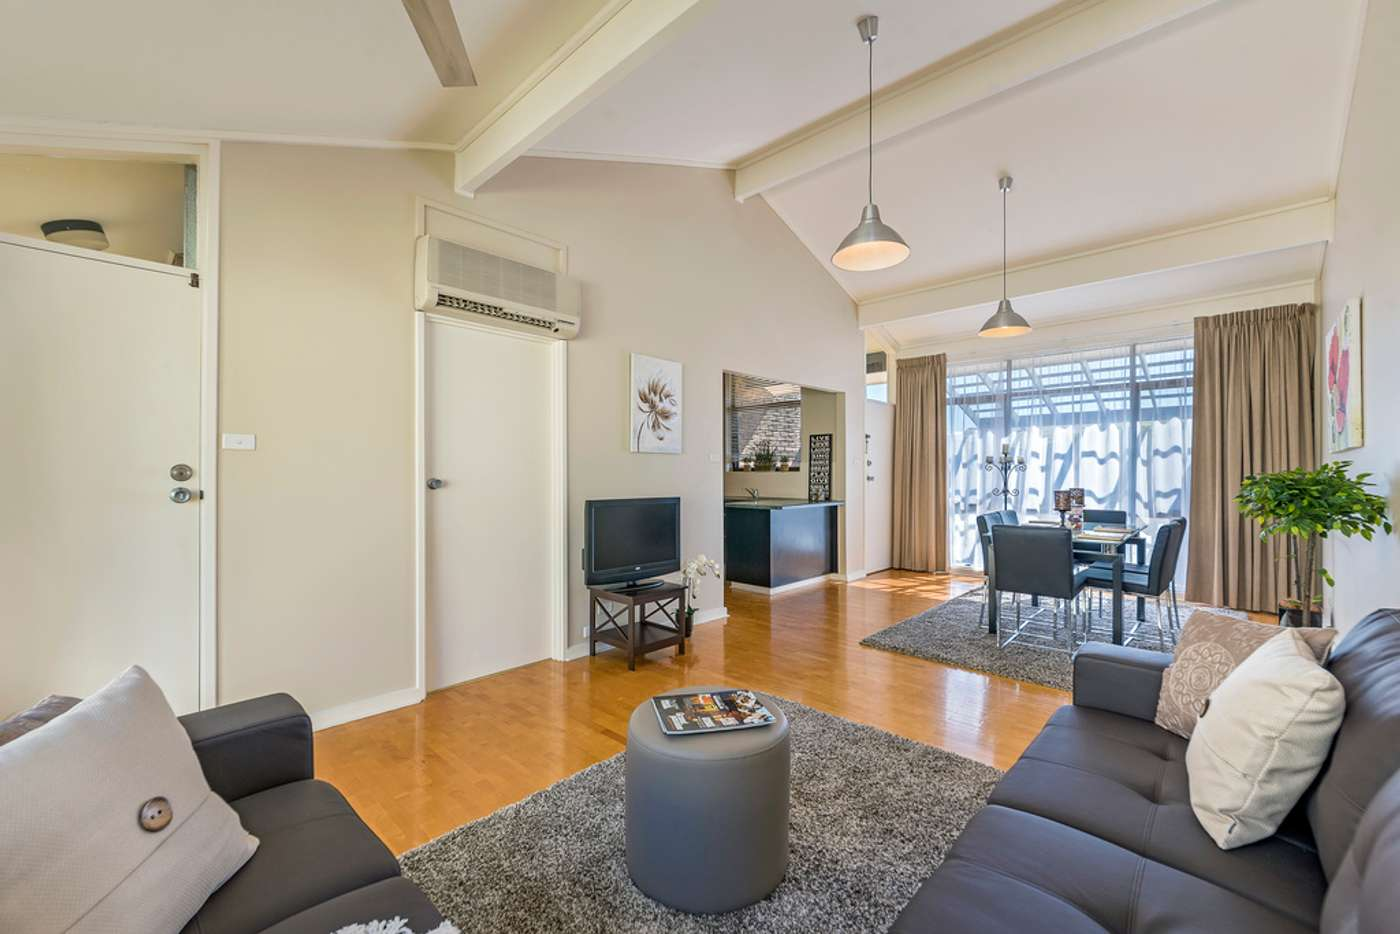 Fifth view of Homely unit listing, 15/216 Payneham Road, Evandale SA 5069